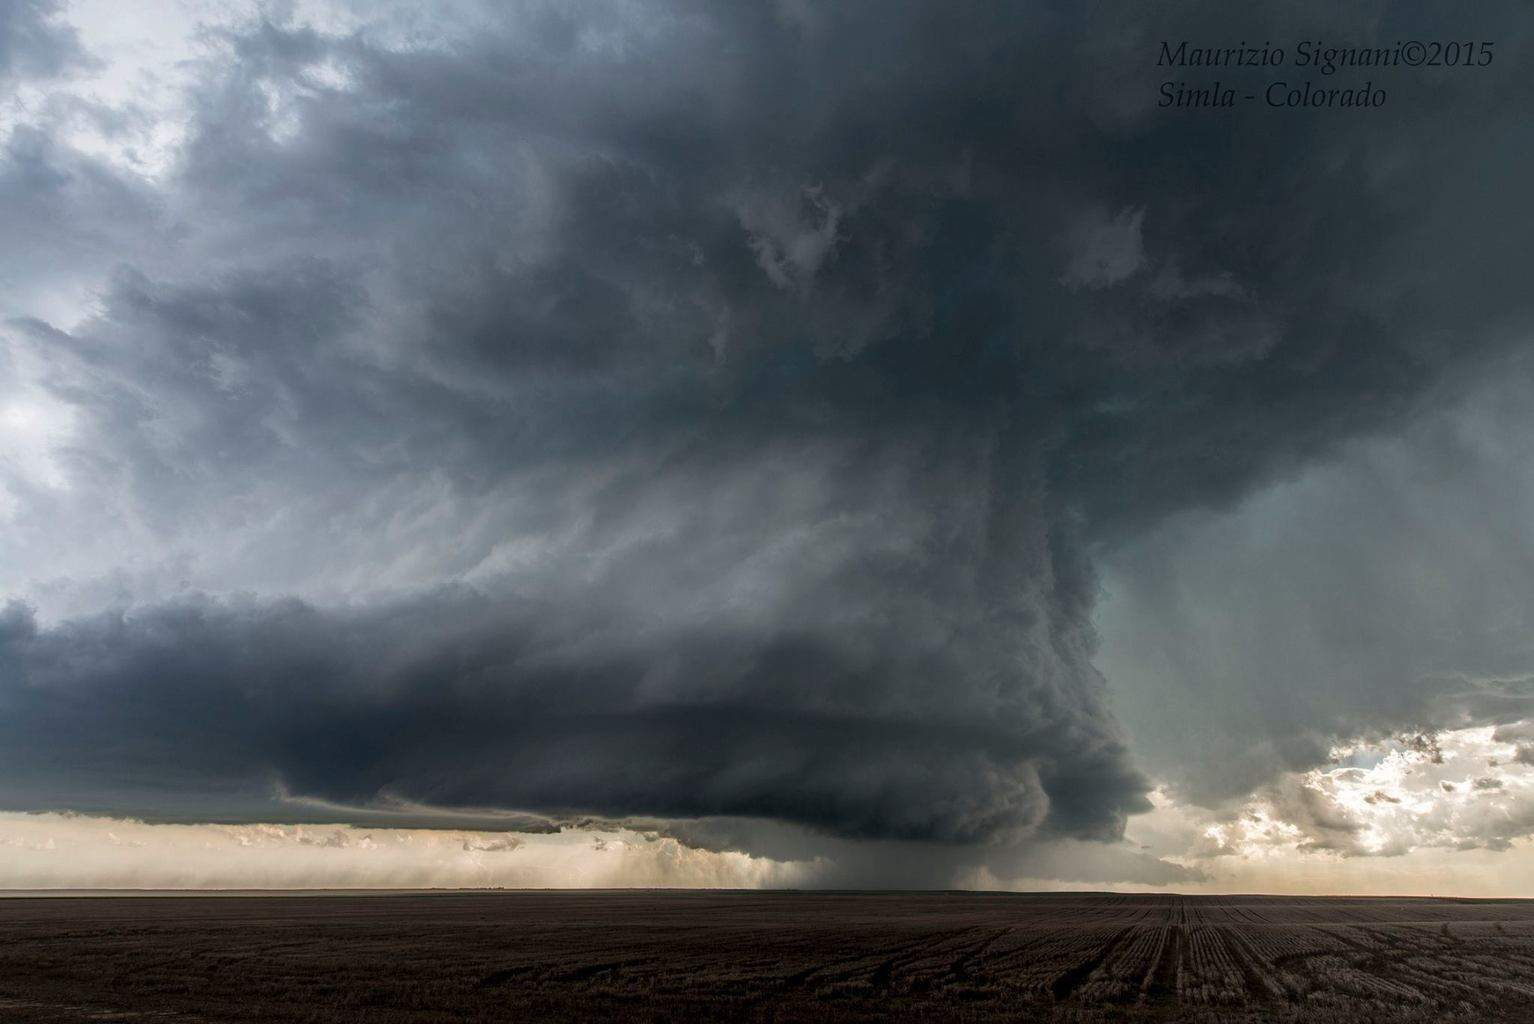 The structure of the Simla tornadic supercell, Colorado. 4th June 2015